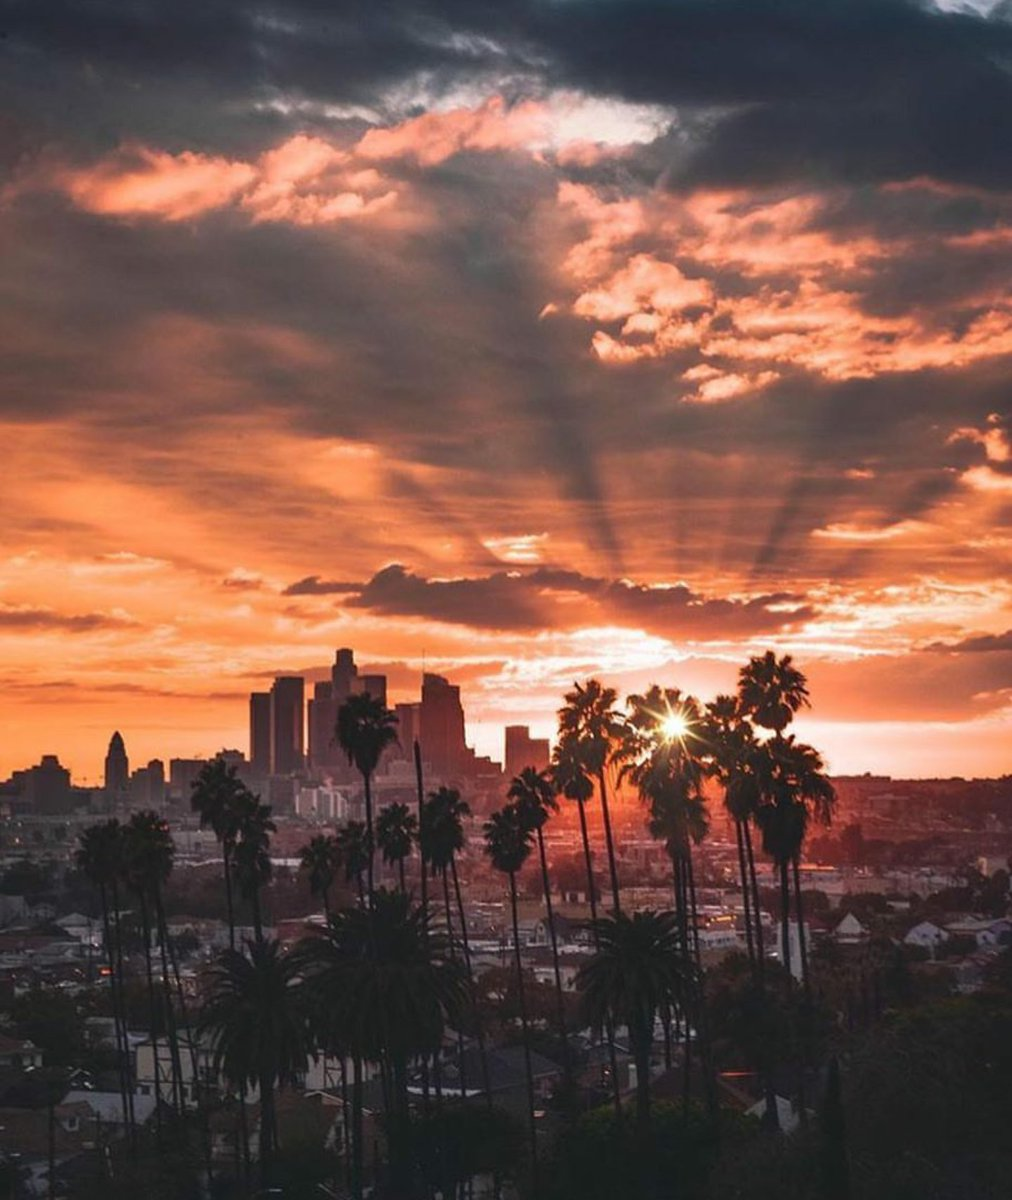 Wouah superbe photo @LHallyday #MERCI pour ce partage  #LA #Lalaland #AfterRain #AmericanSunset  Cc @JohnnySjh<br>http://pic.twitter.com/coc0AEayEa